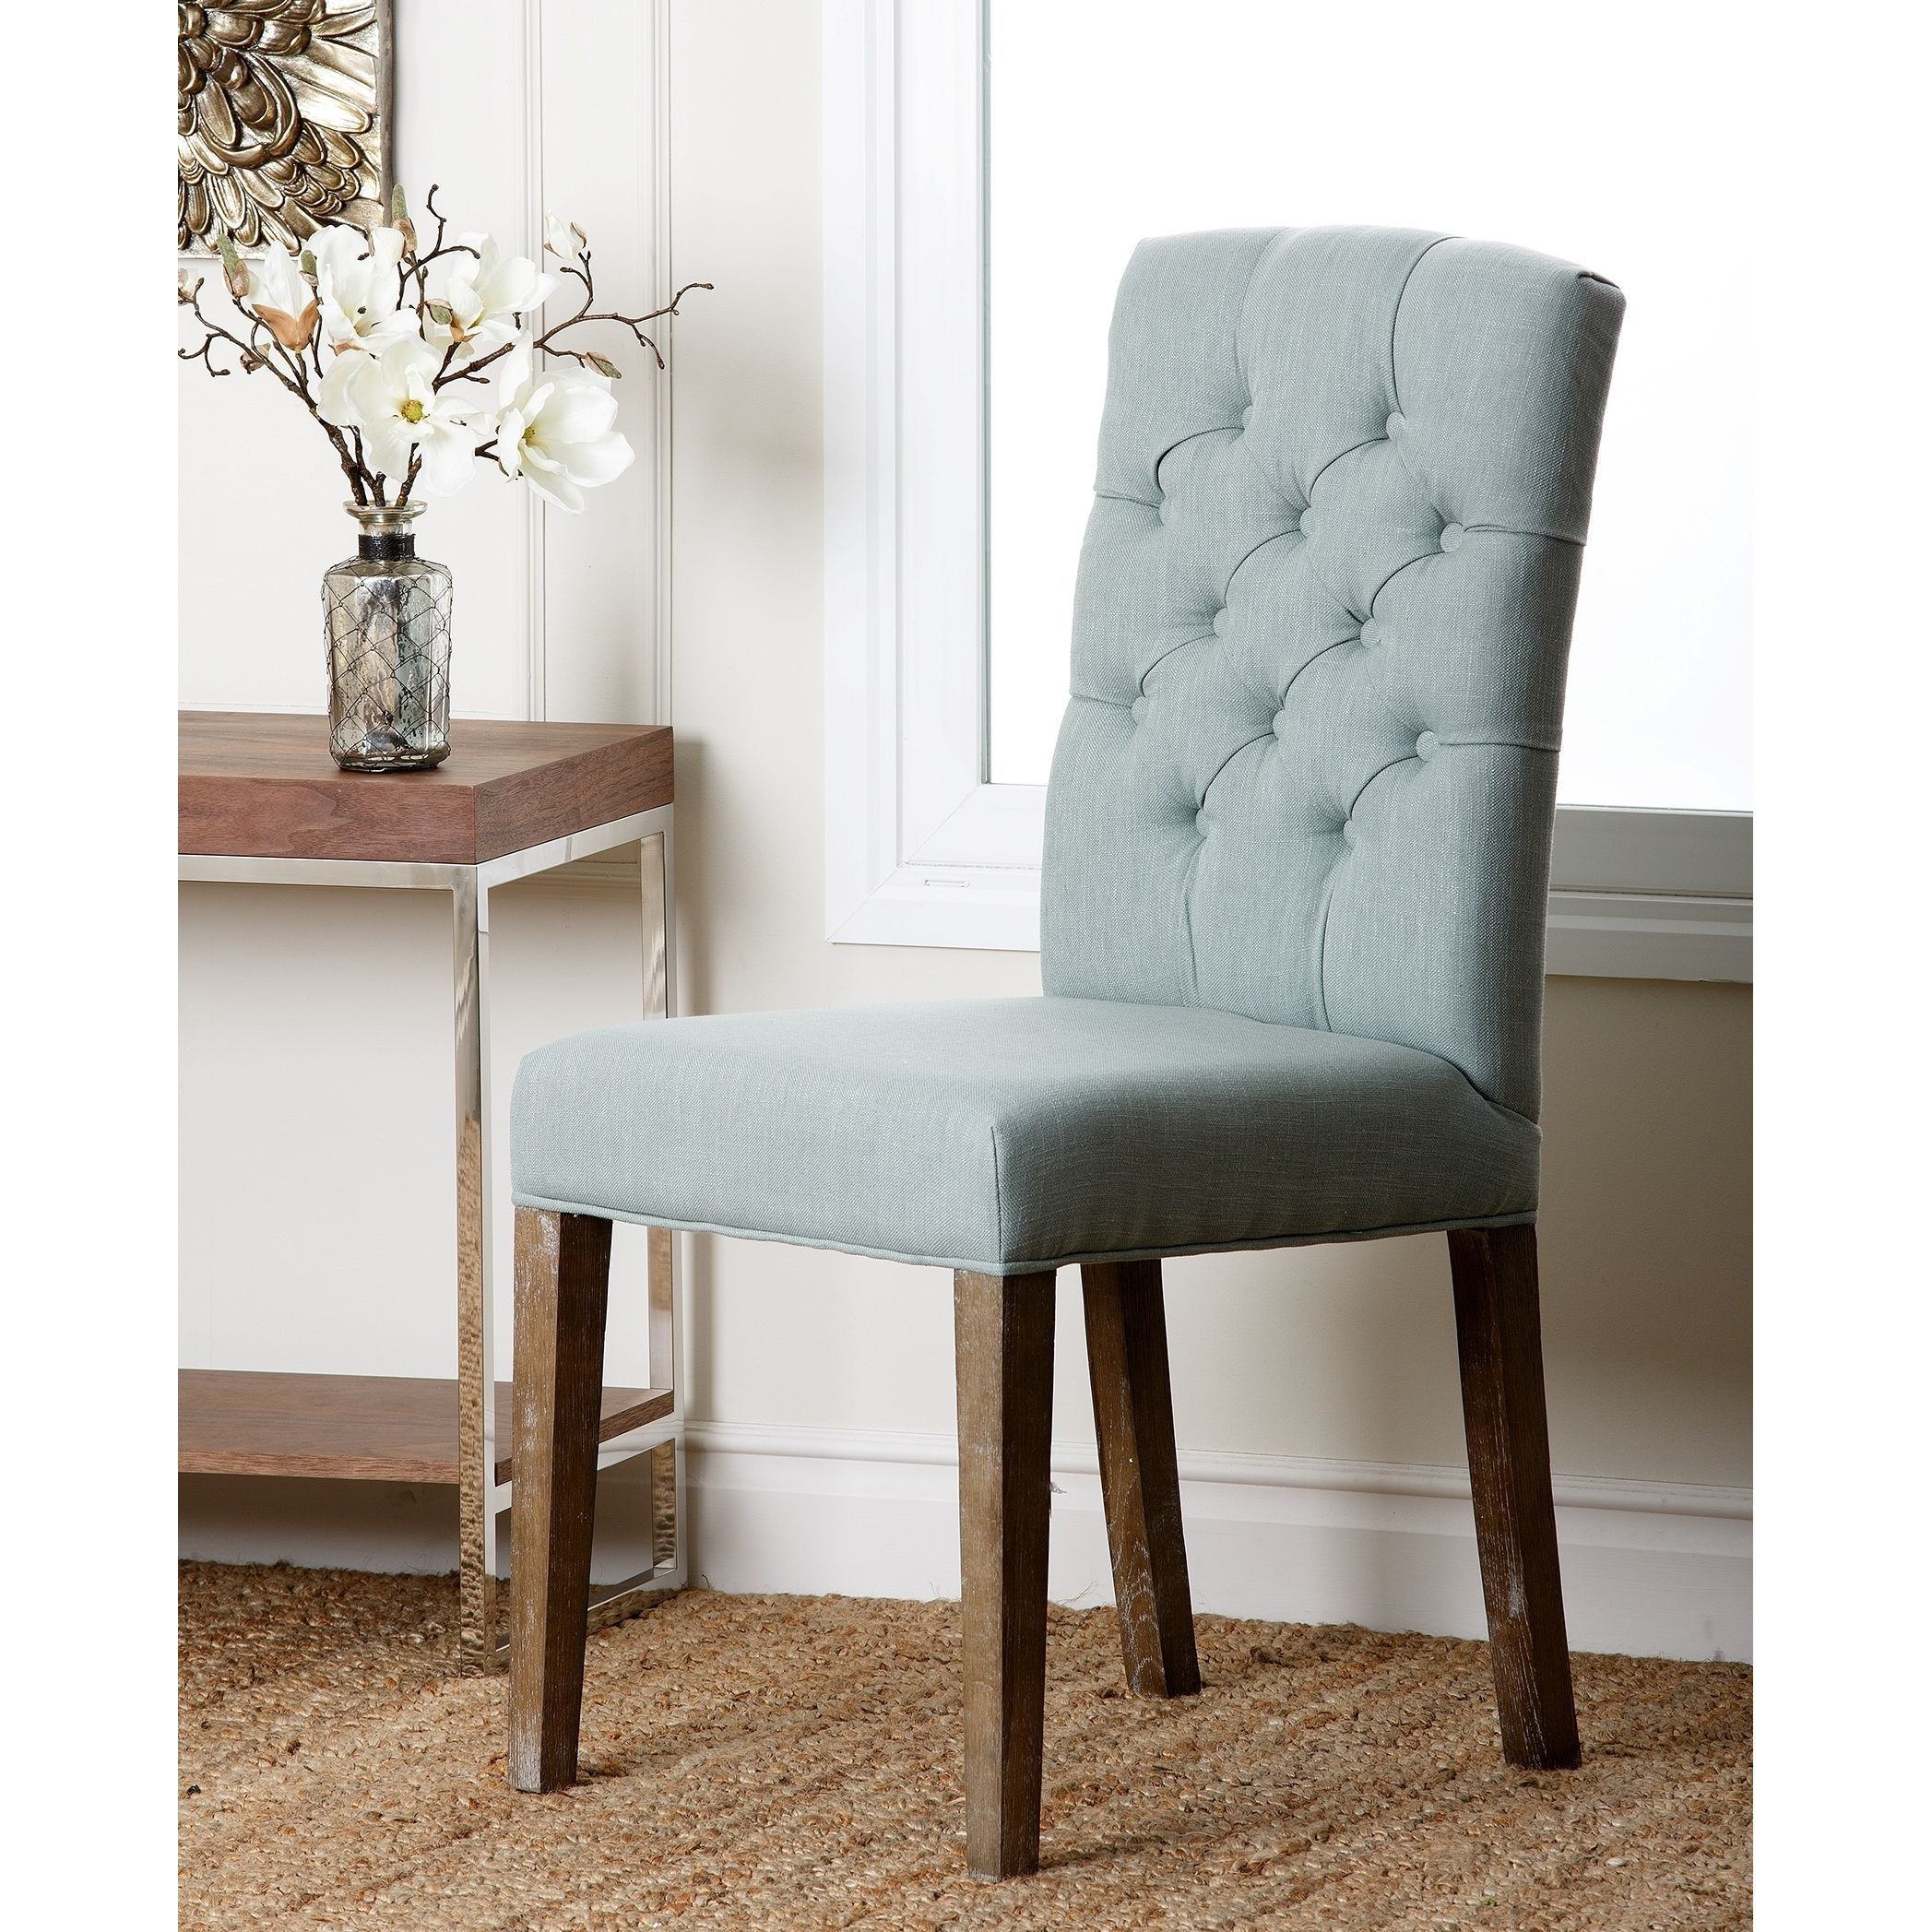 overstock com chairs gothic throne for sale this classy chair features a light blue linen upholstery